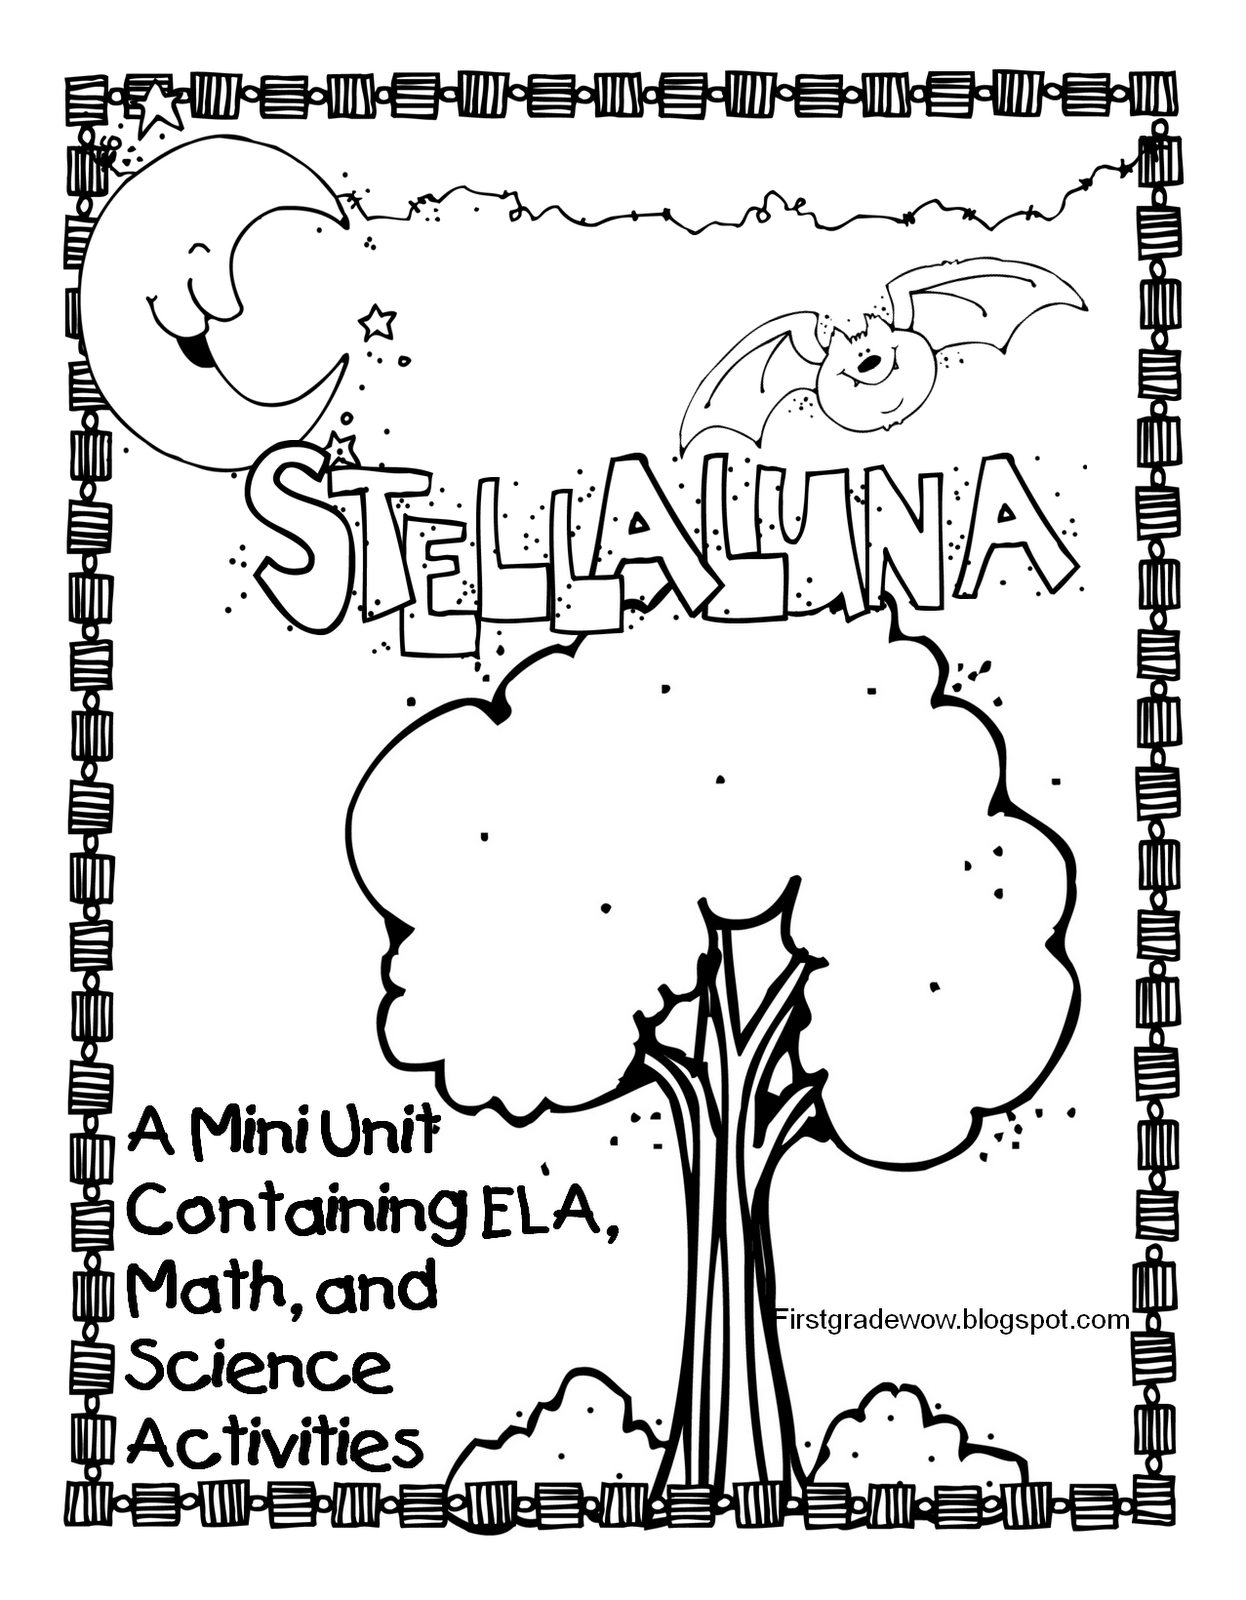 First Grade Wow Stellaluna Saves The Day And The Week